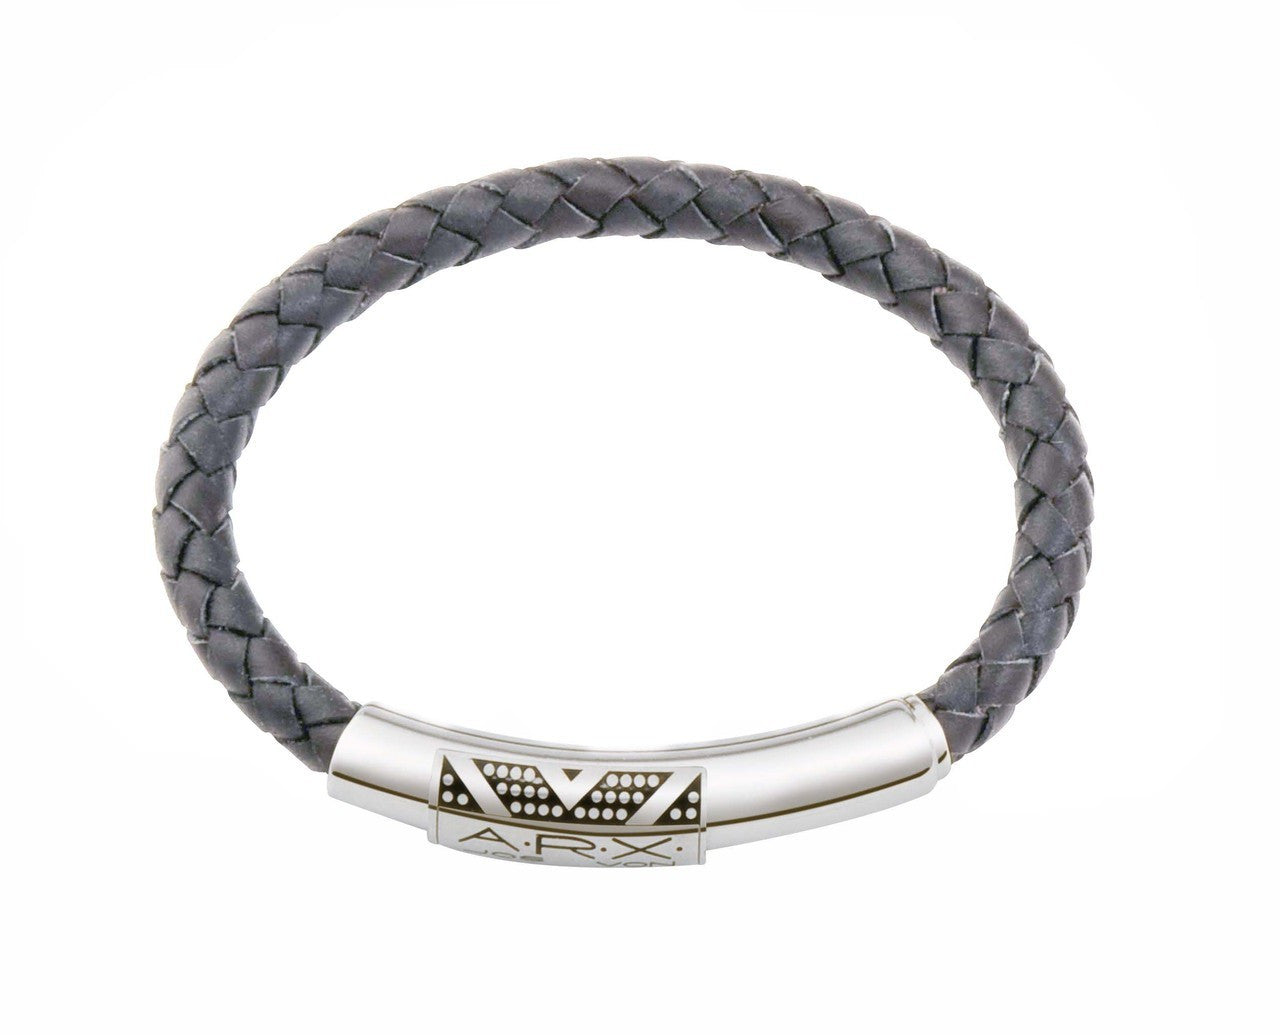 INB15 leather and steel adjustable bracelet